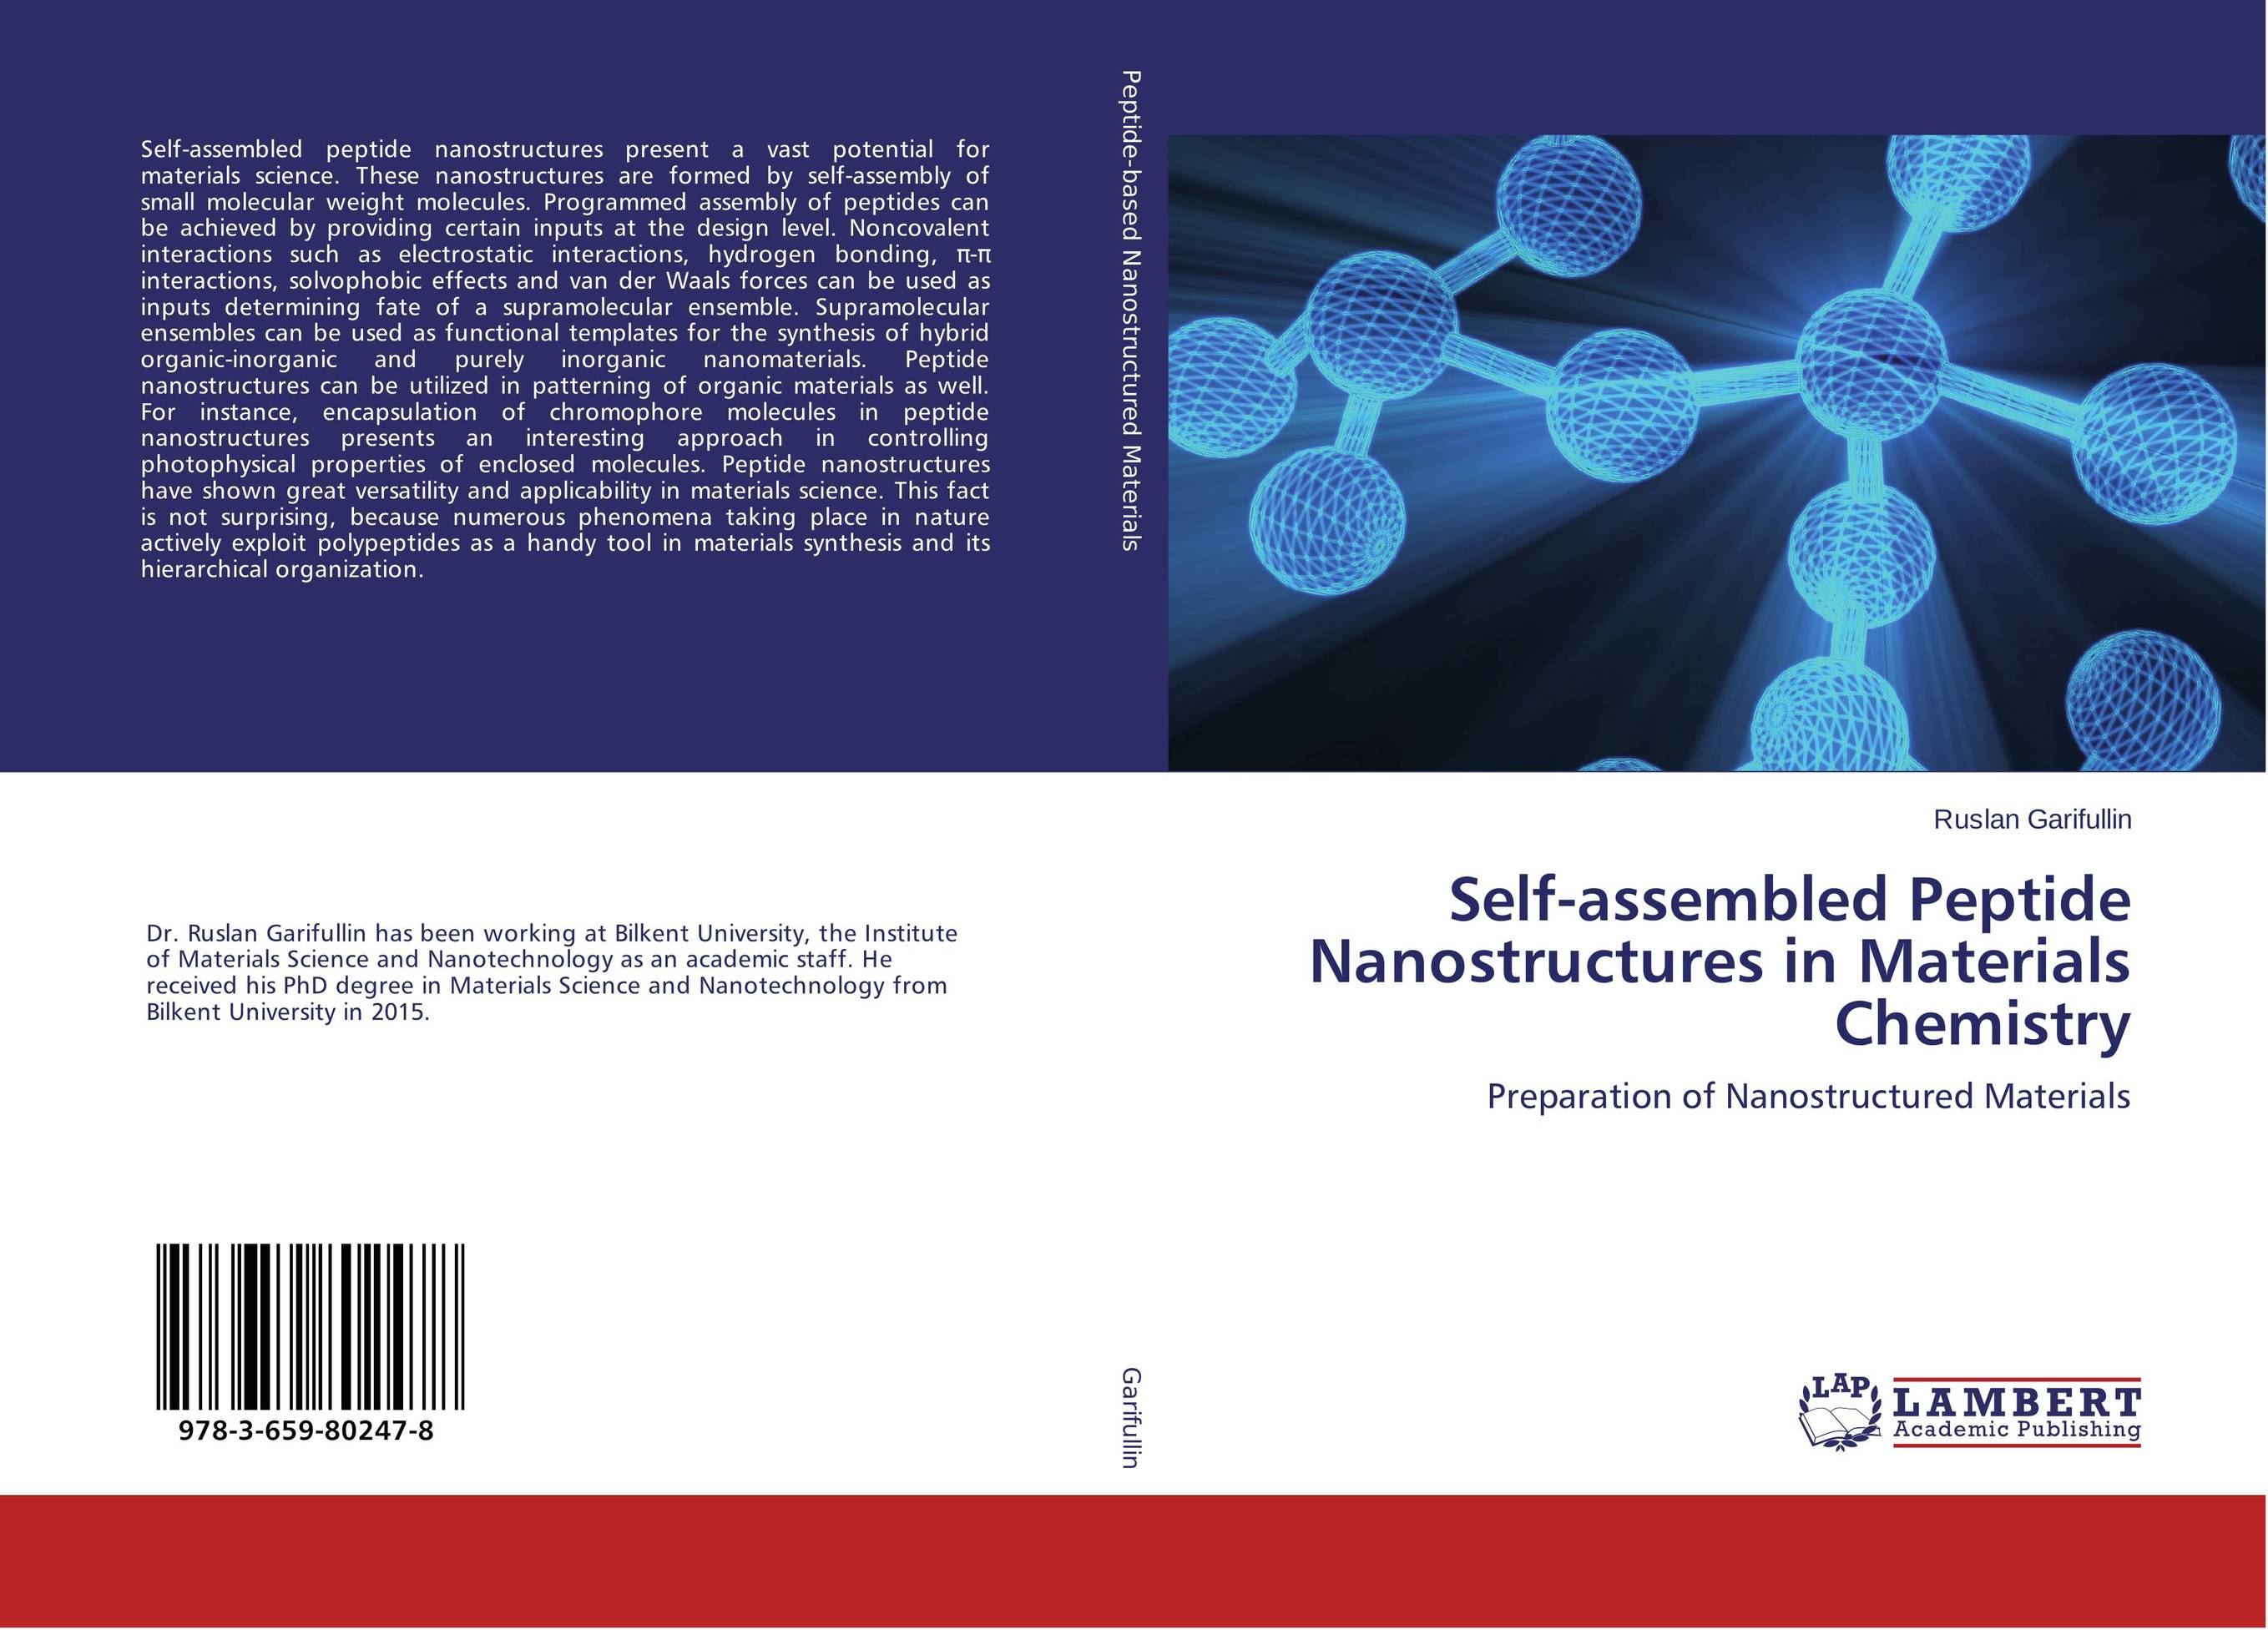 Self-assembled Peptide Nanostructures in Materials Chemistry